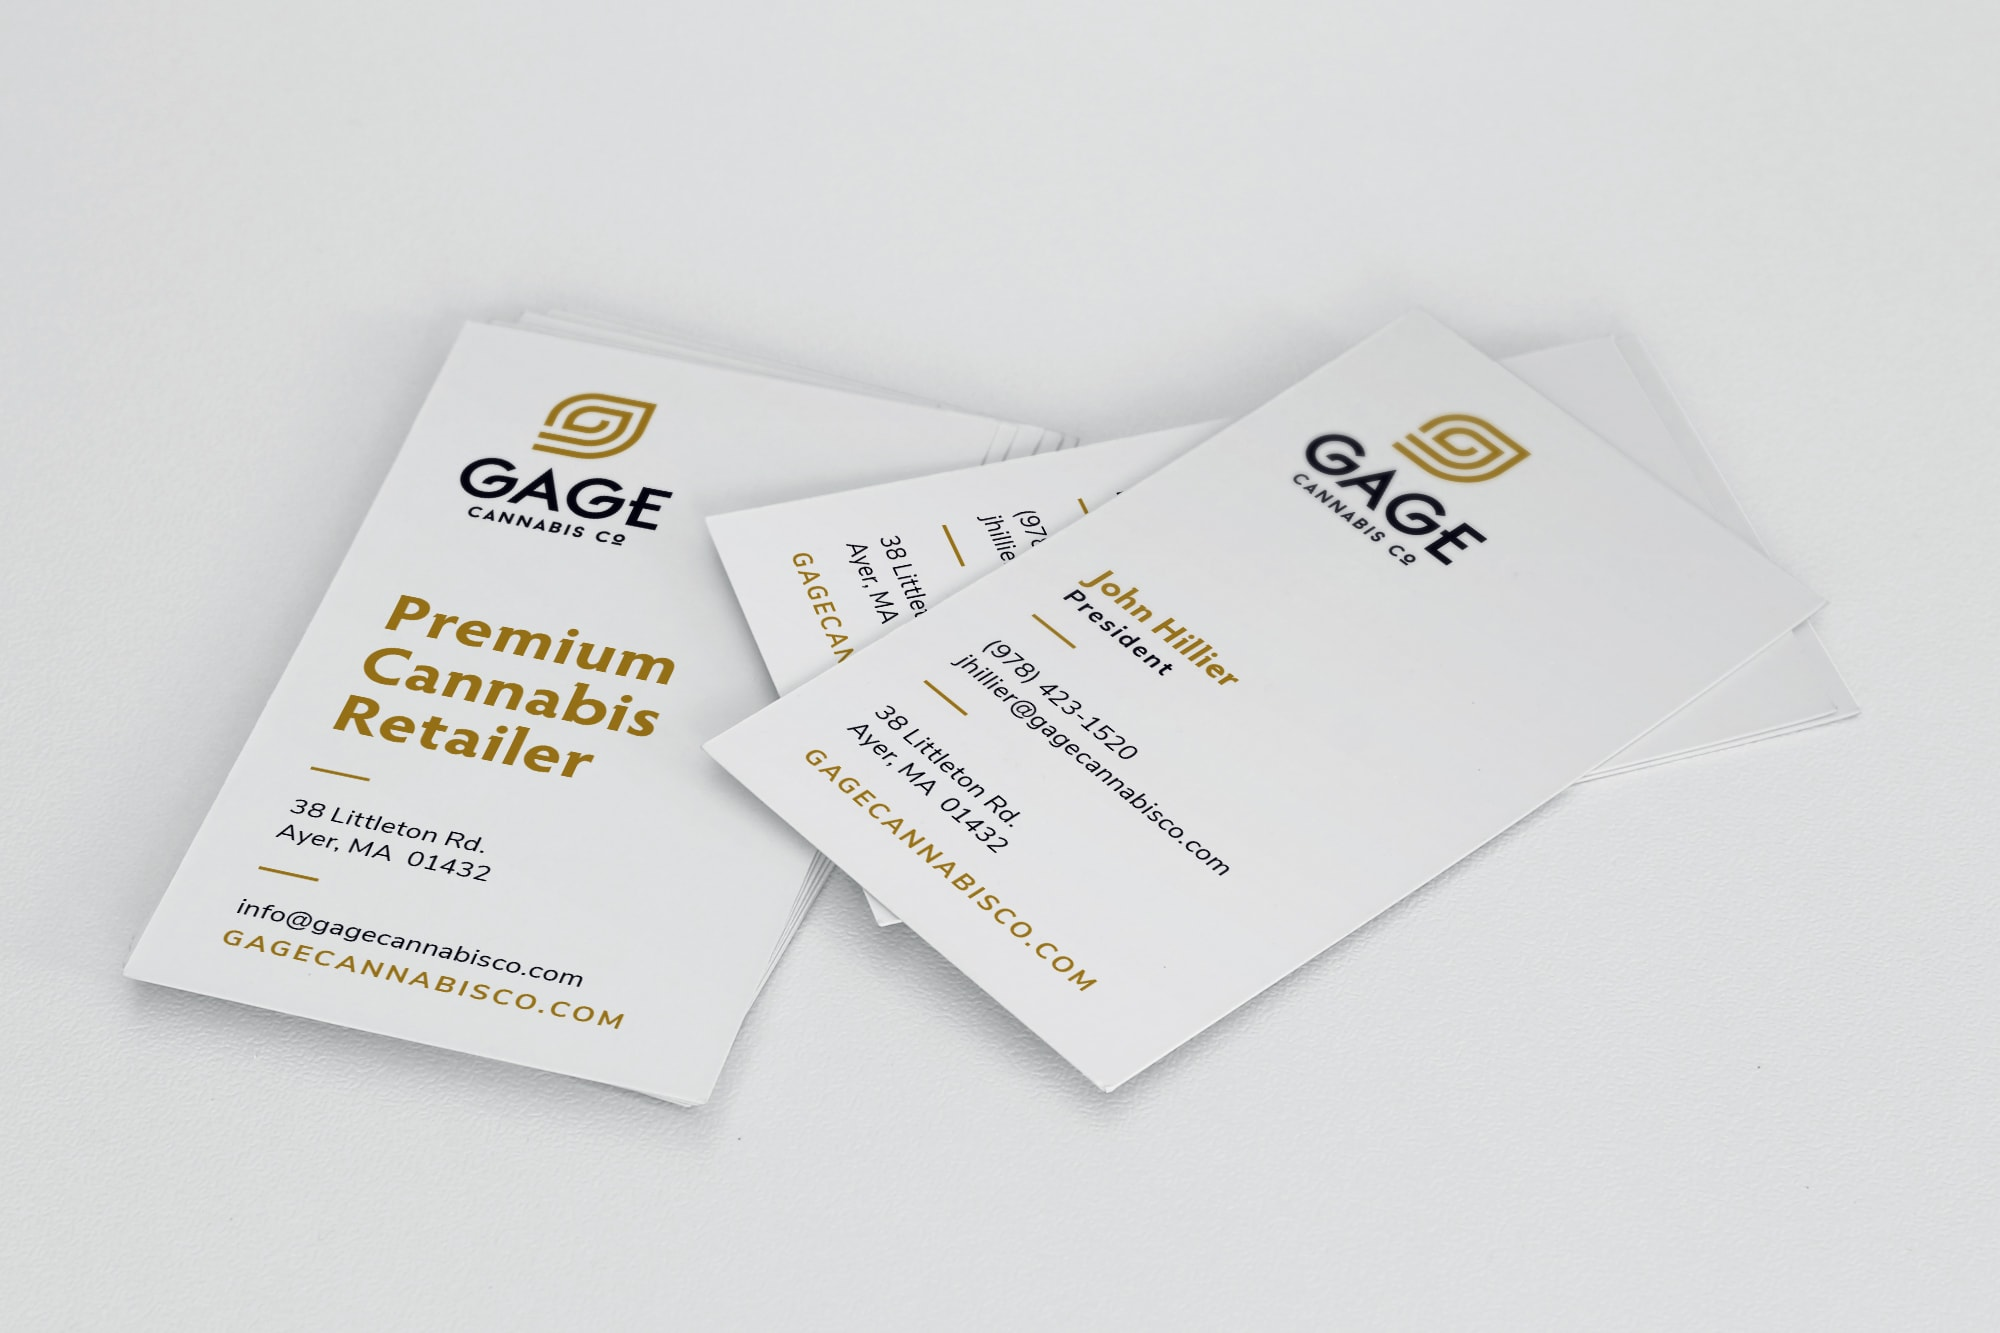 Gage Cannabis Company business card design